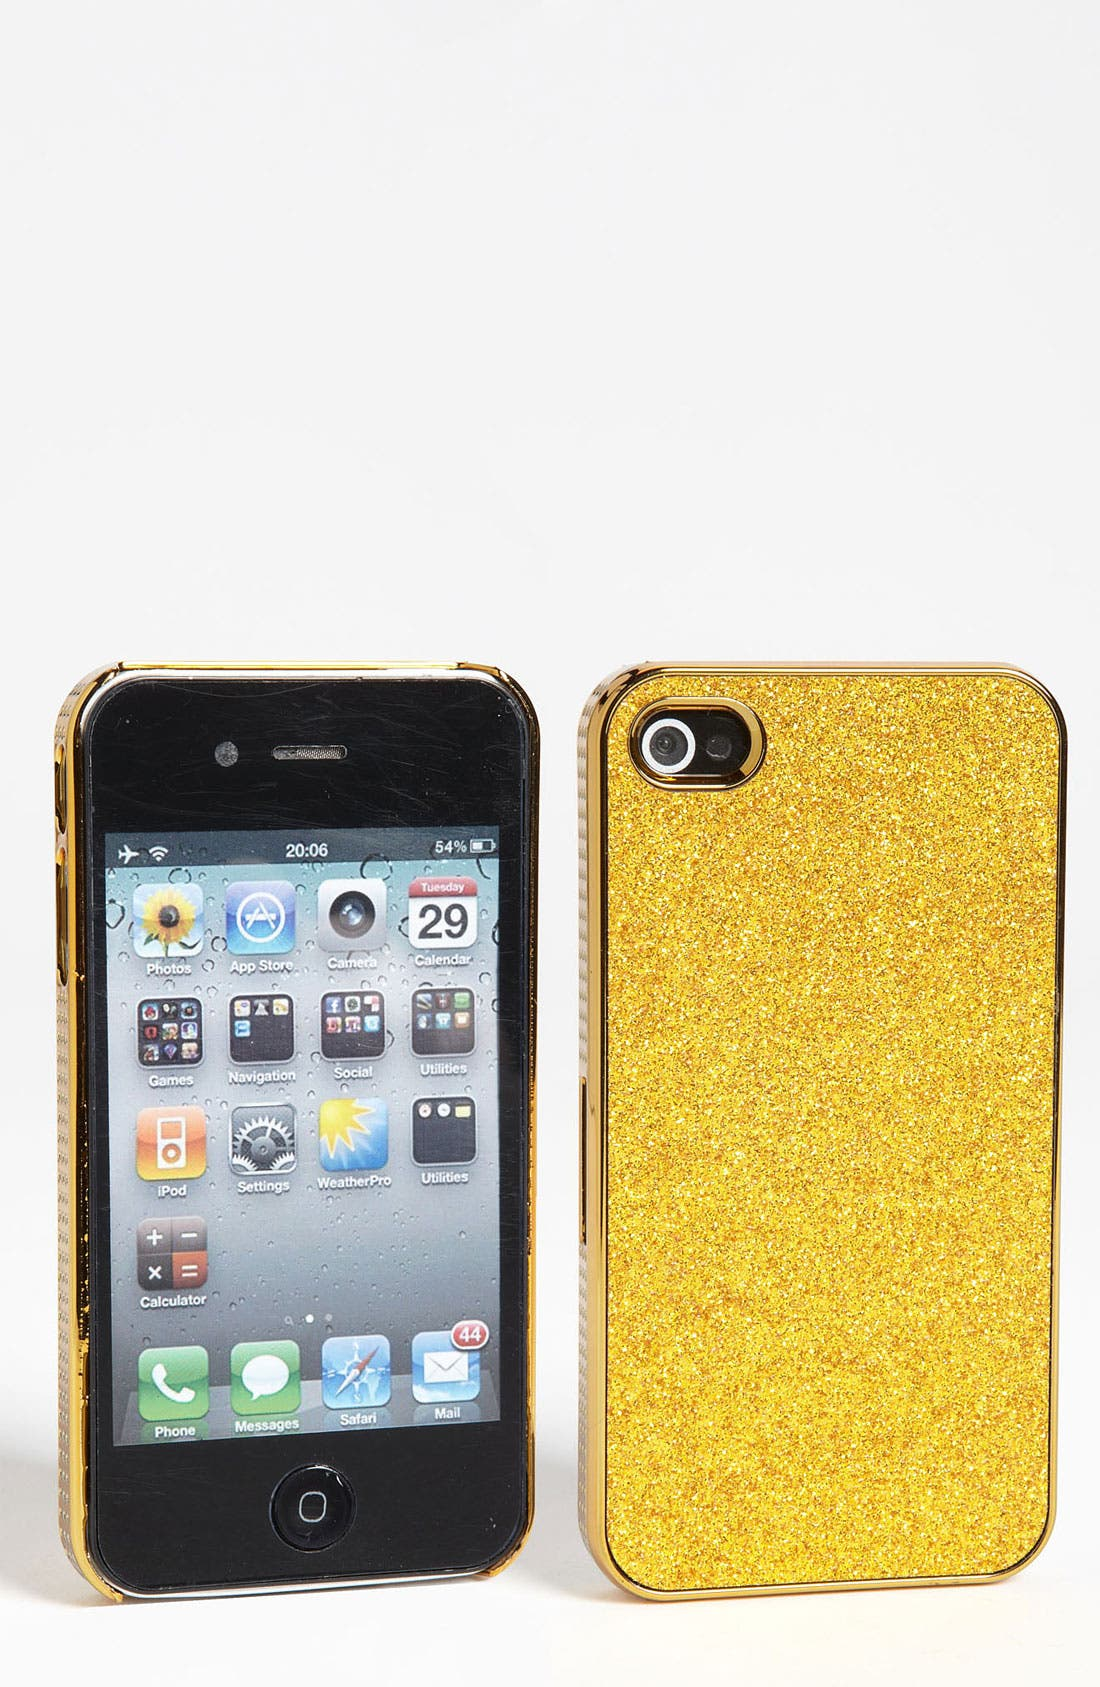 Main Image - Design Lab 'Glitter' iPhone 4 & 4S Case